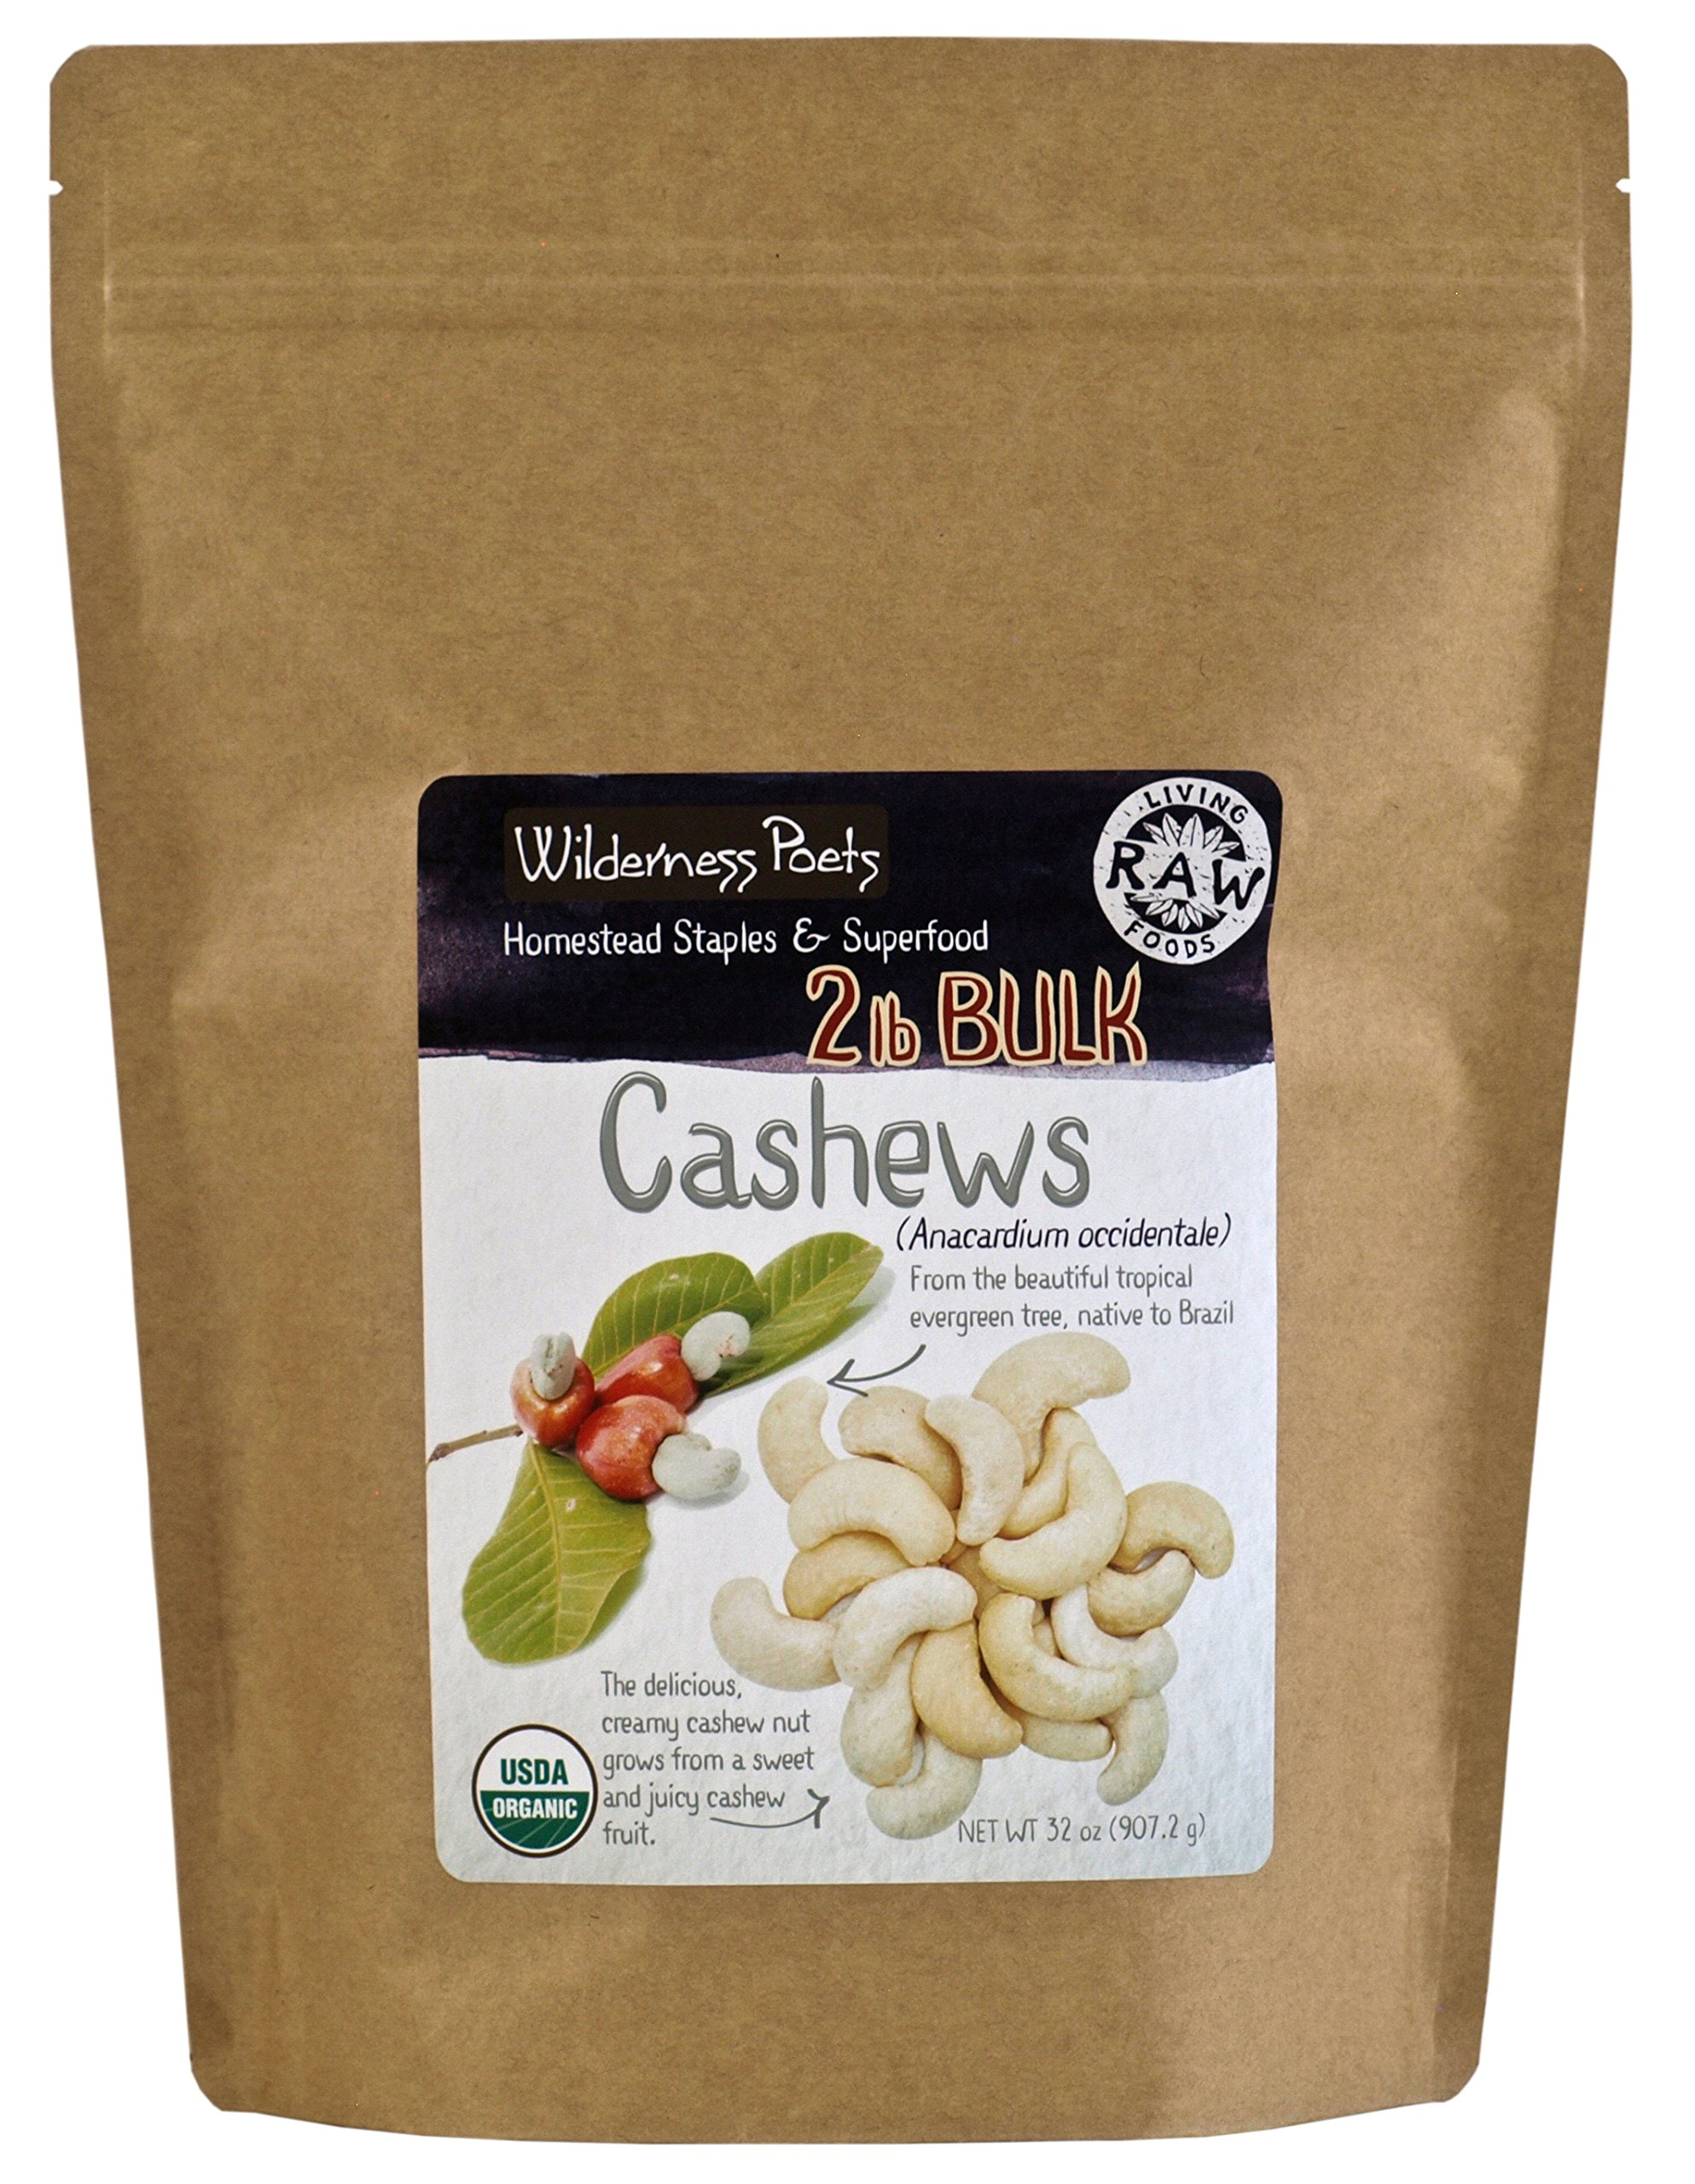 Wilderness Poets Cashews - Organic Raw Cashew Nuts, 2 Pound (32 Ounce)